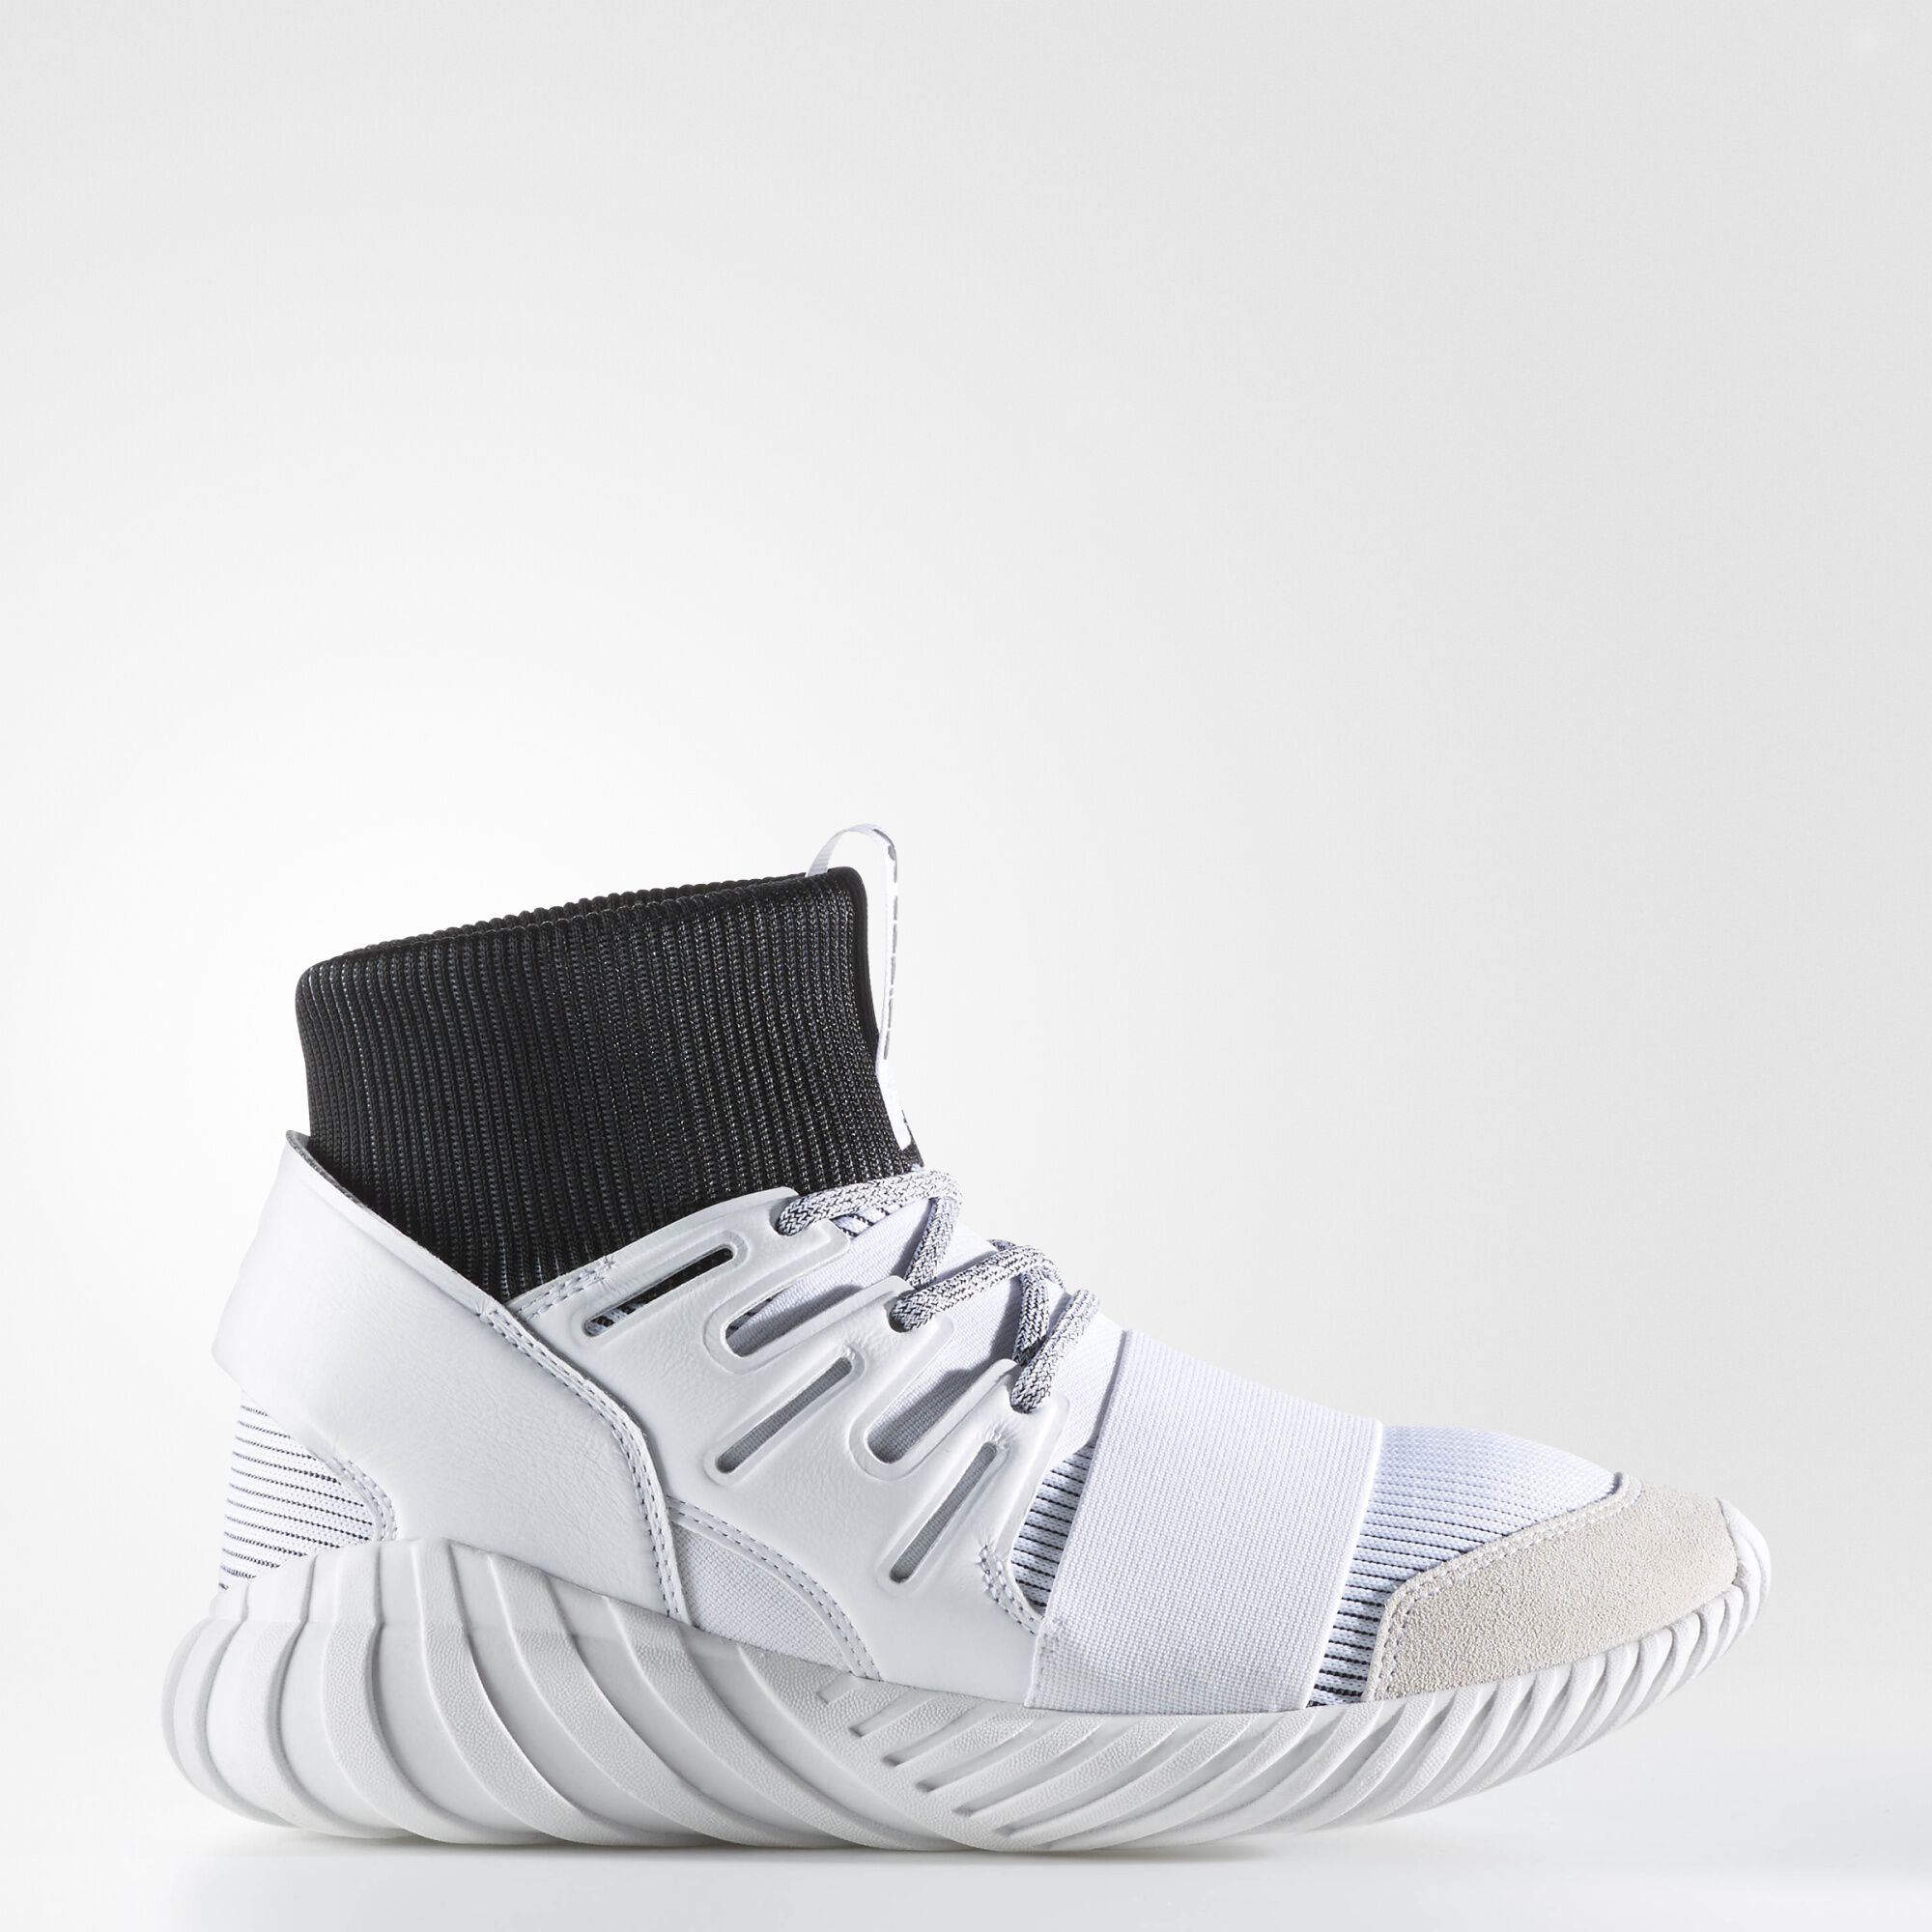 Toddler Adidas originals tubular x mesa gum Buy 54% off